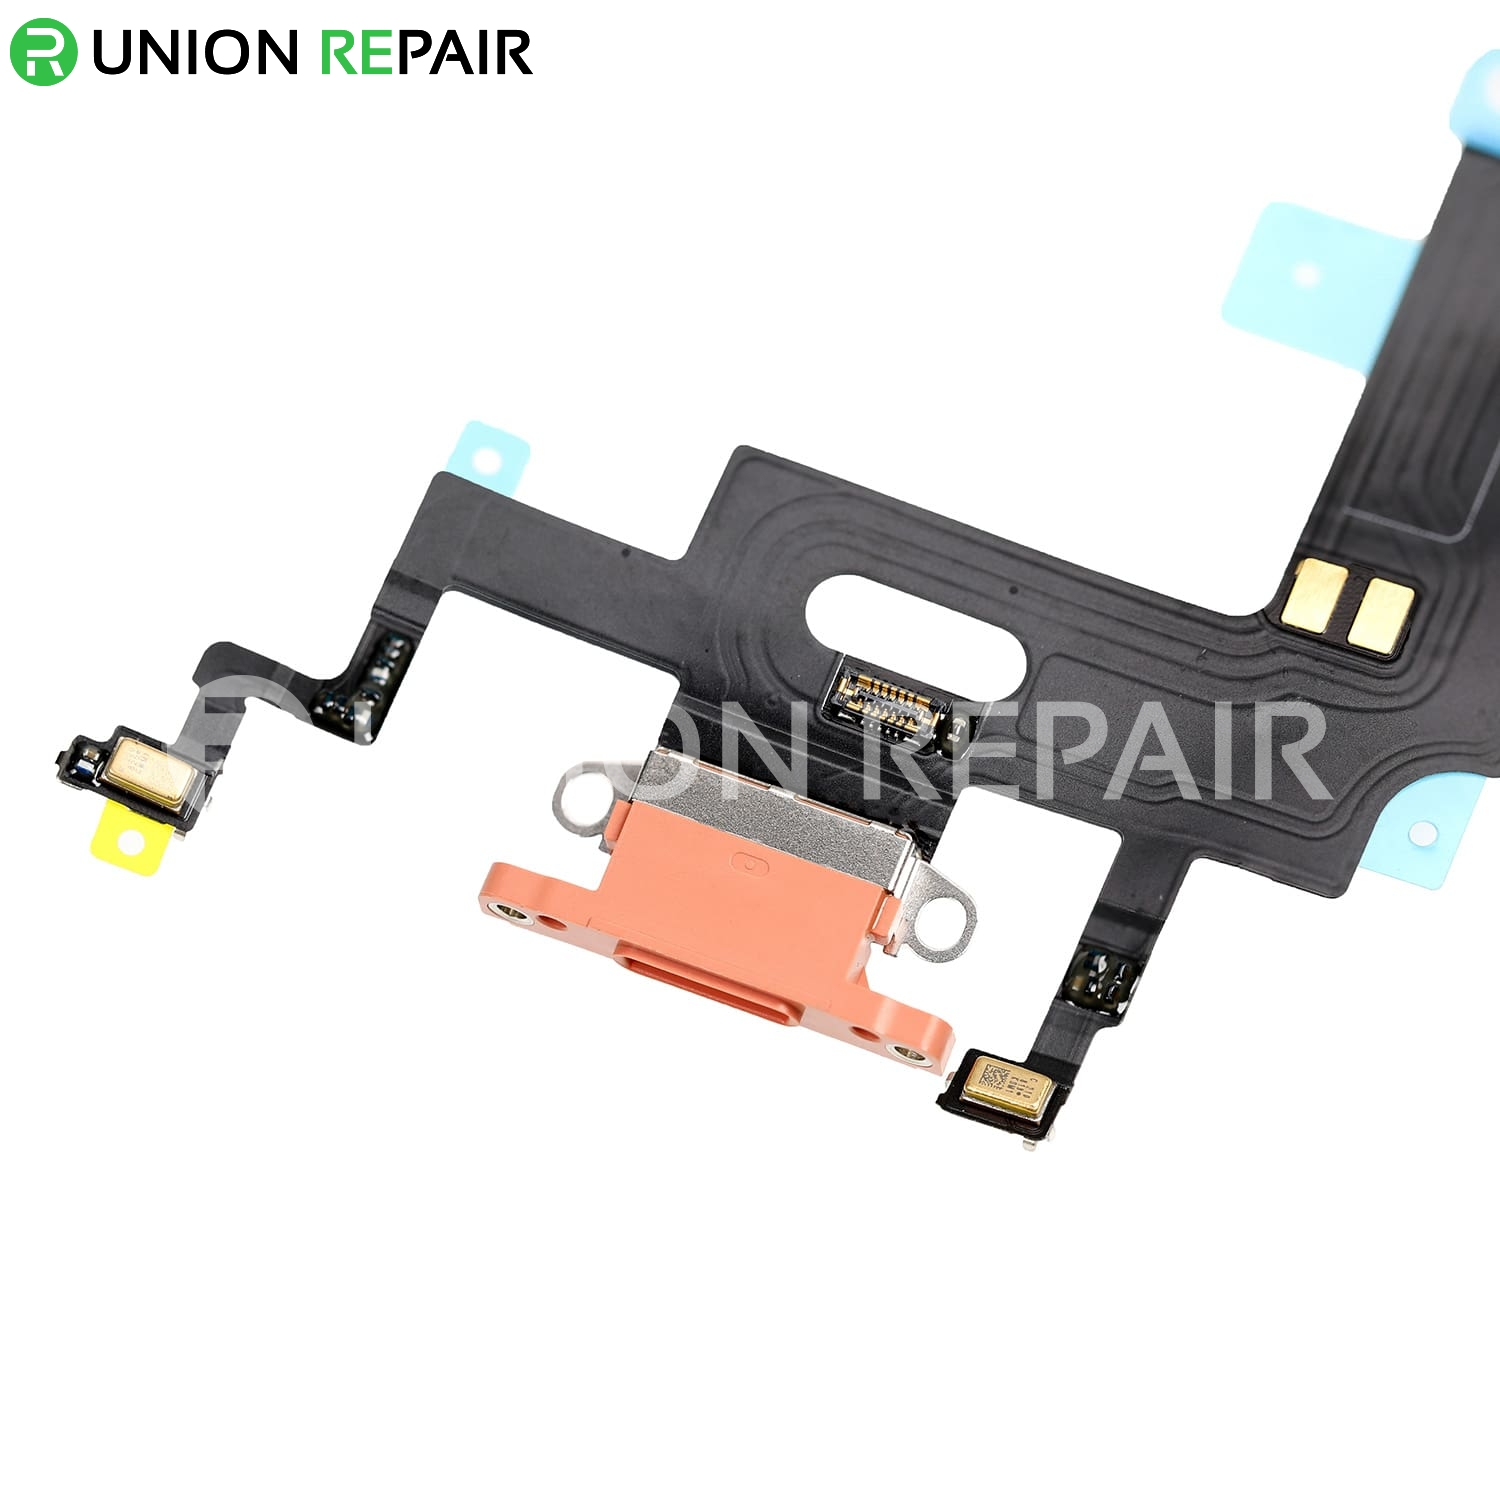 Replacement for iPhone XR Charging Connector Assembly - Coral